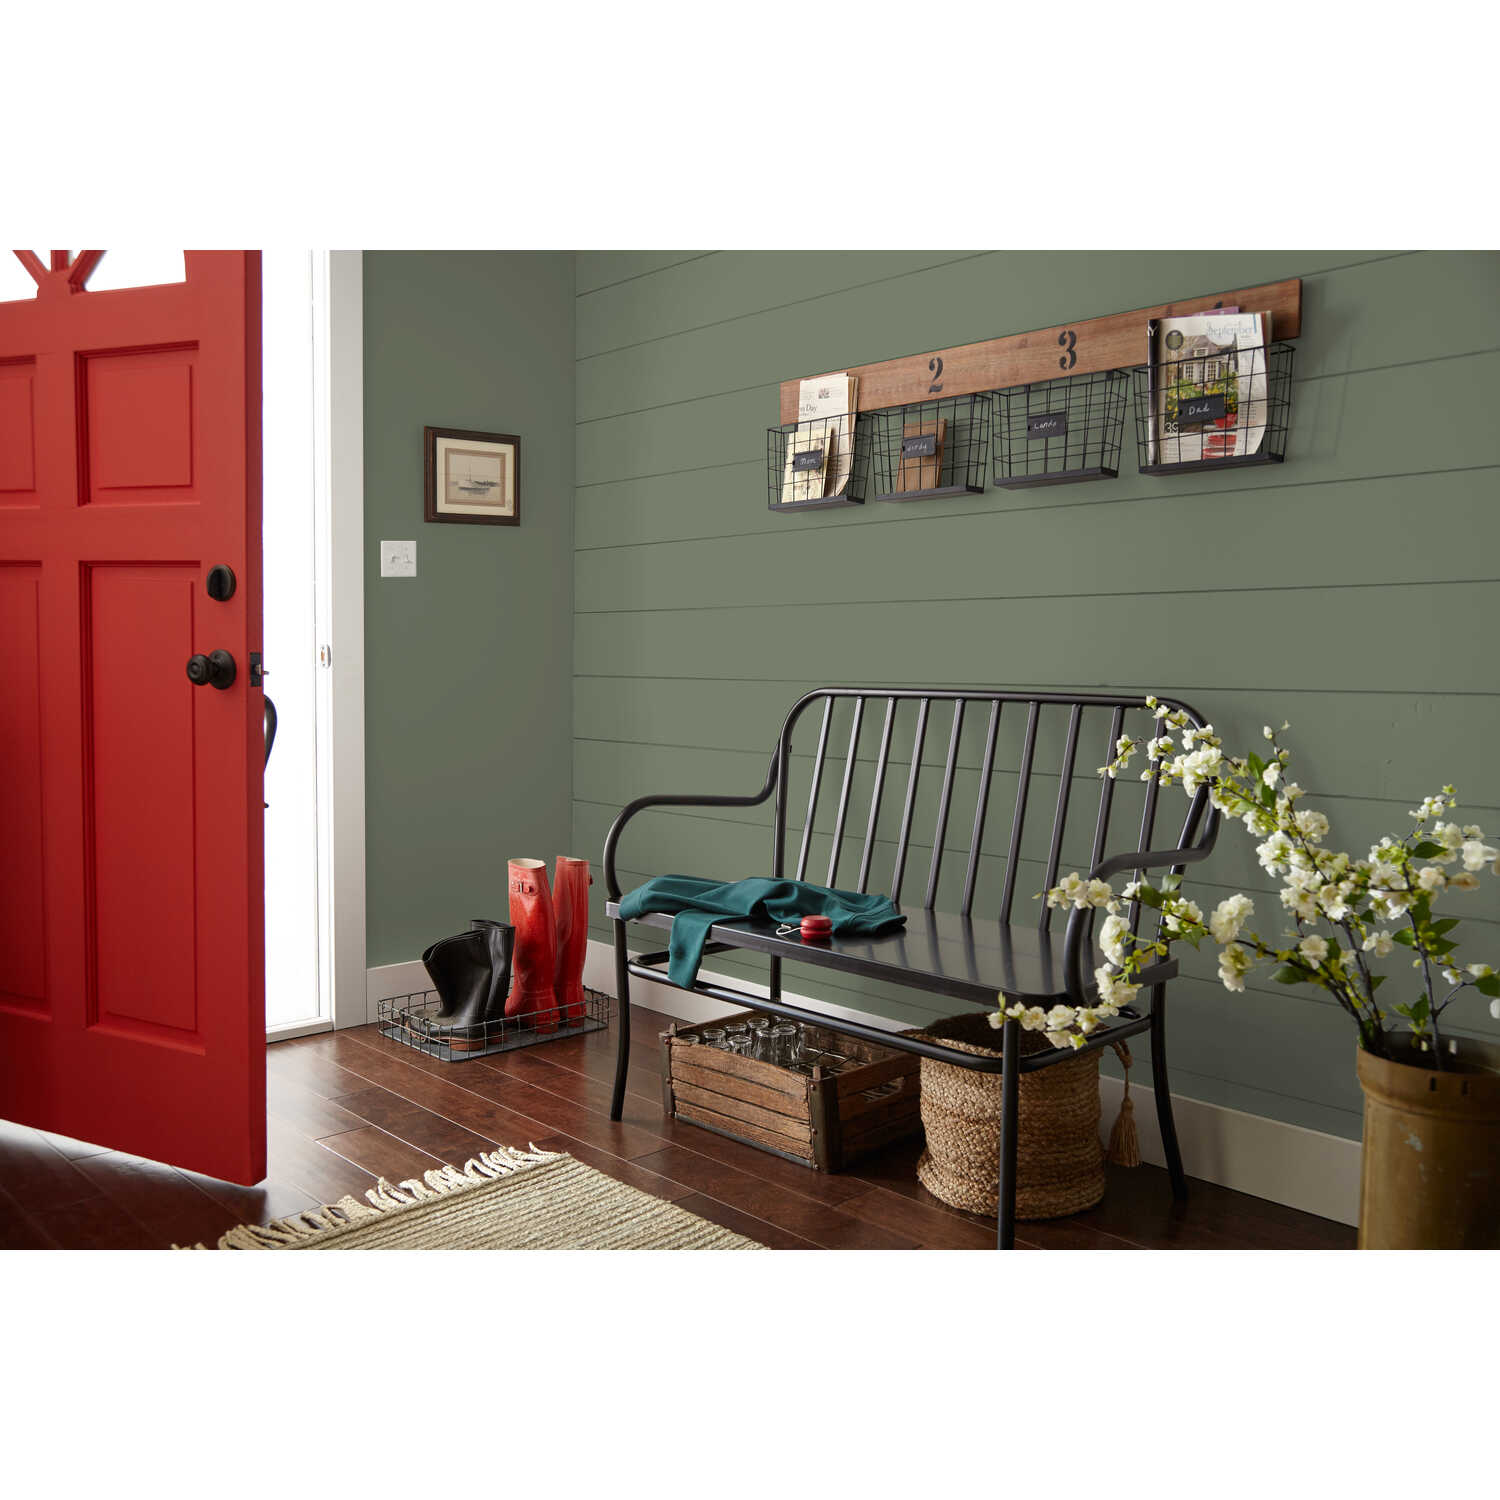 Magnolia Home  by Joanna Gaines  Matte  Bespoke Green  Deep Base  Acrylic  Paint  1 gal.